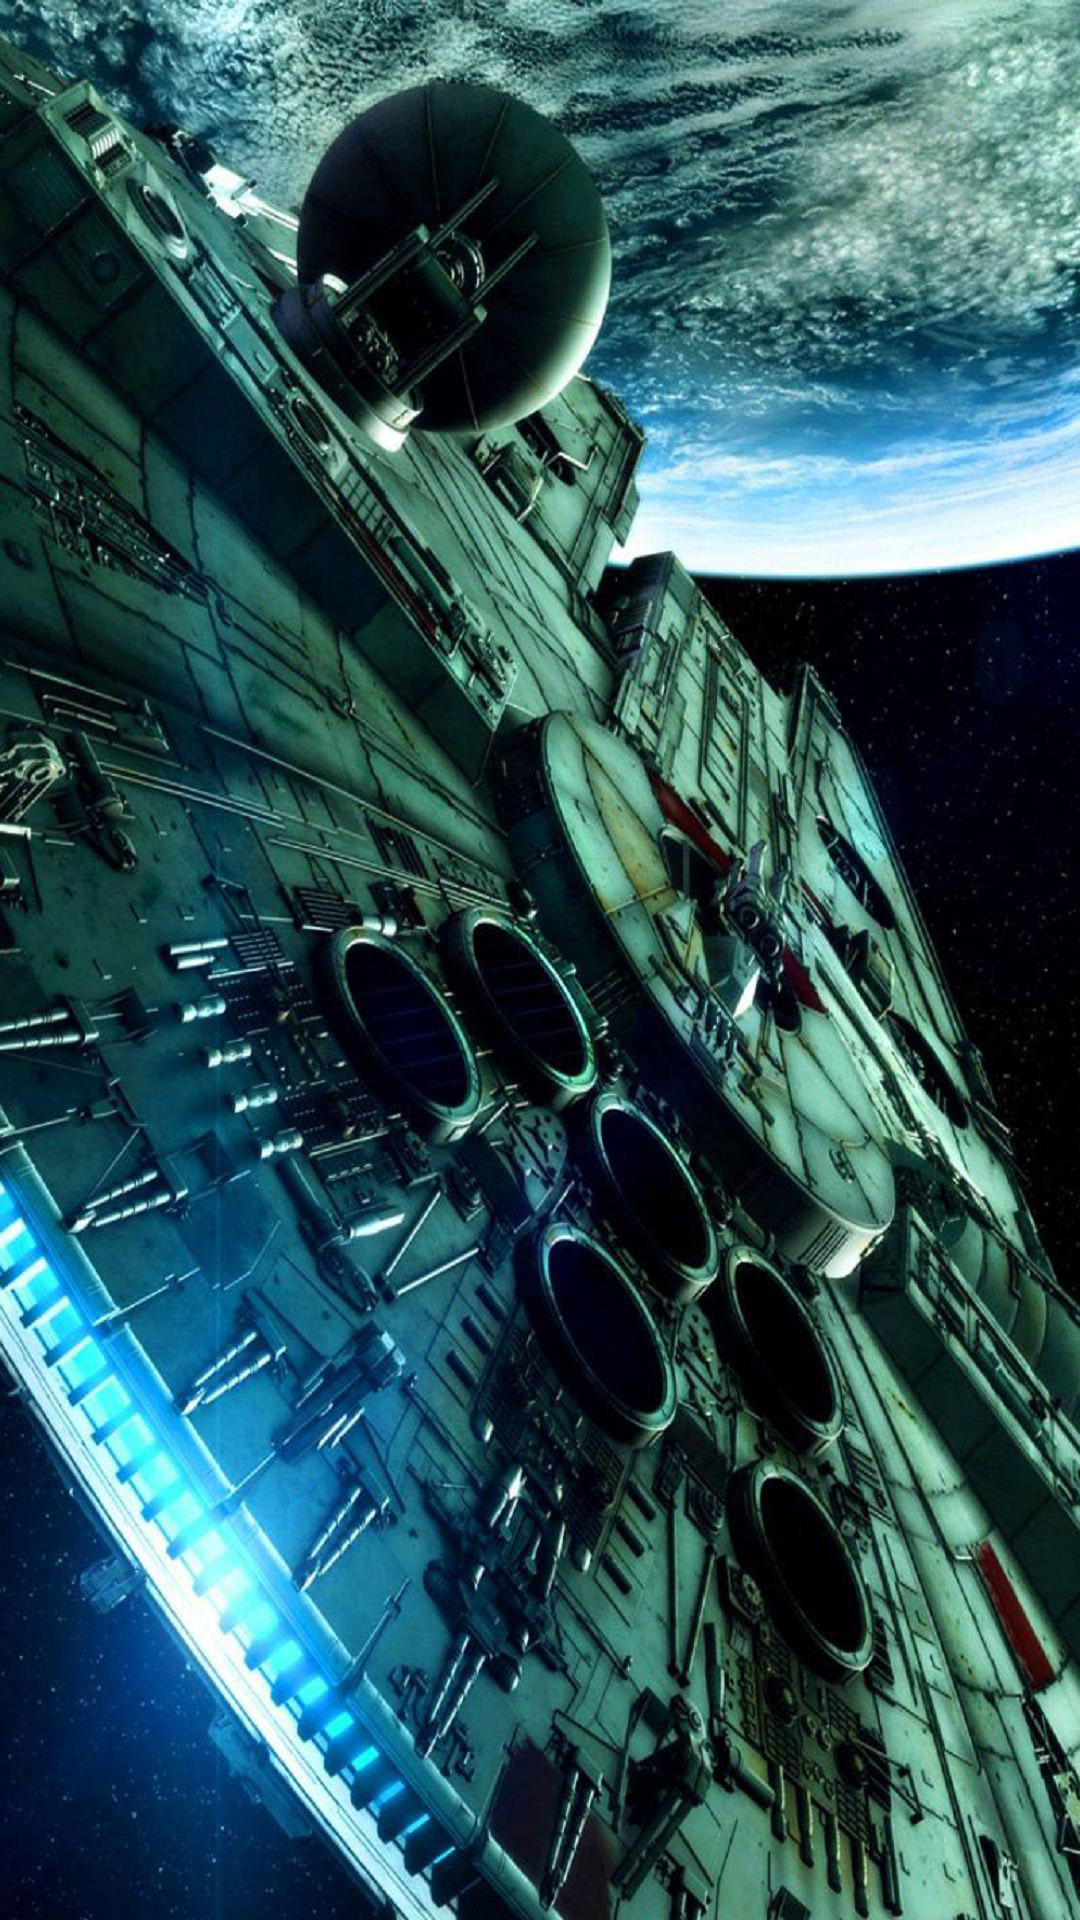 Star-Wars-Spaceship-Science-Fiction-iPhone-6-Plus-HD-Wallpaper